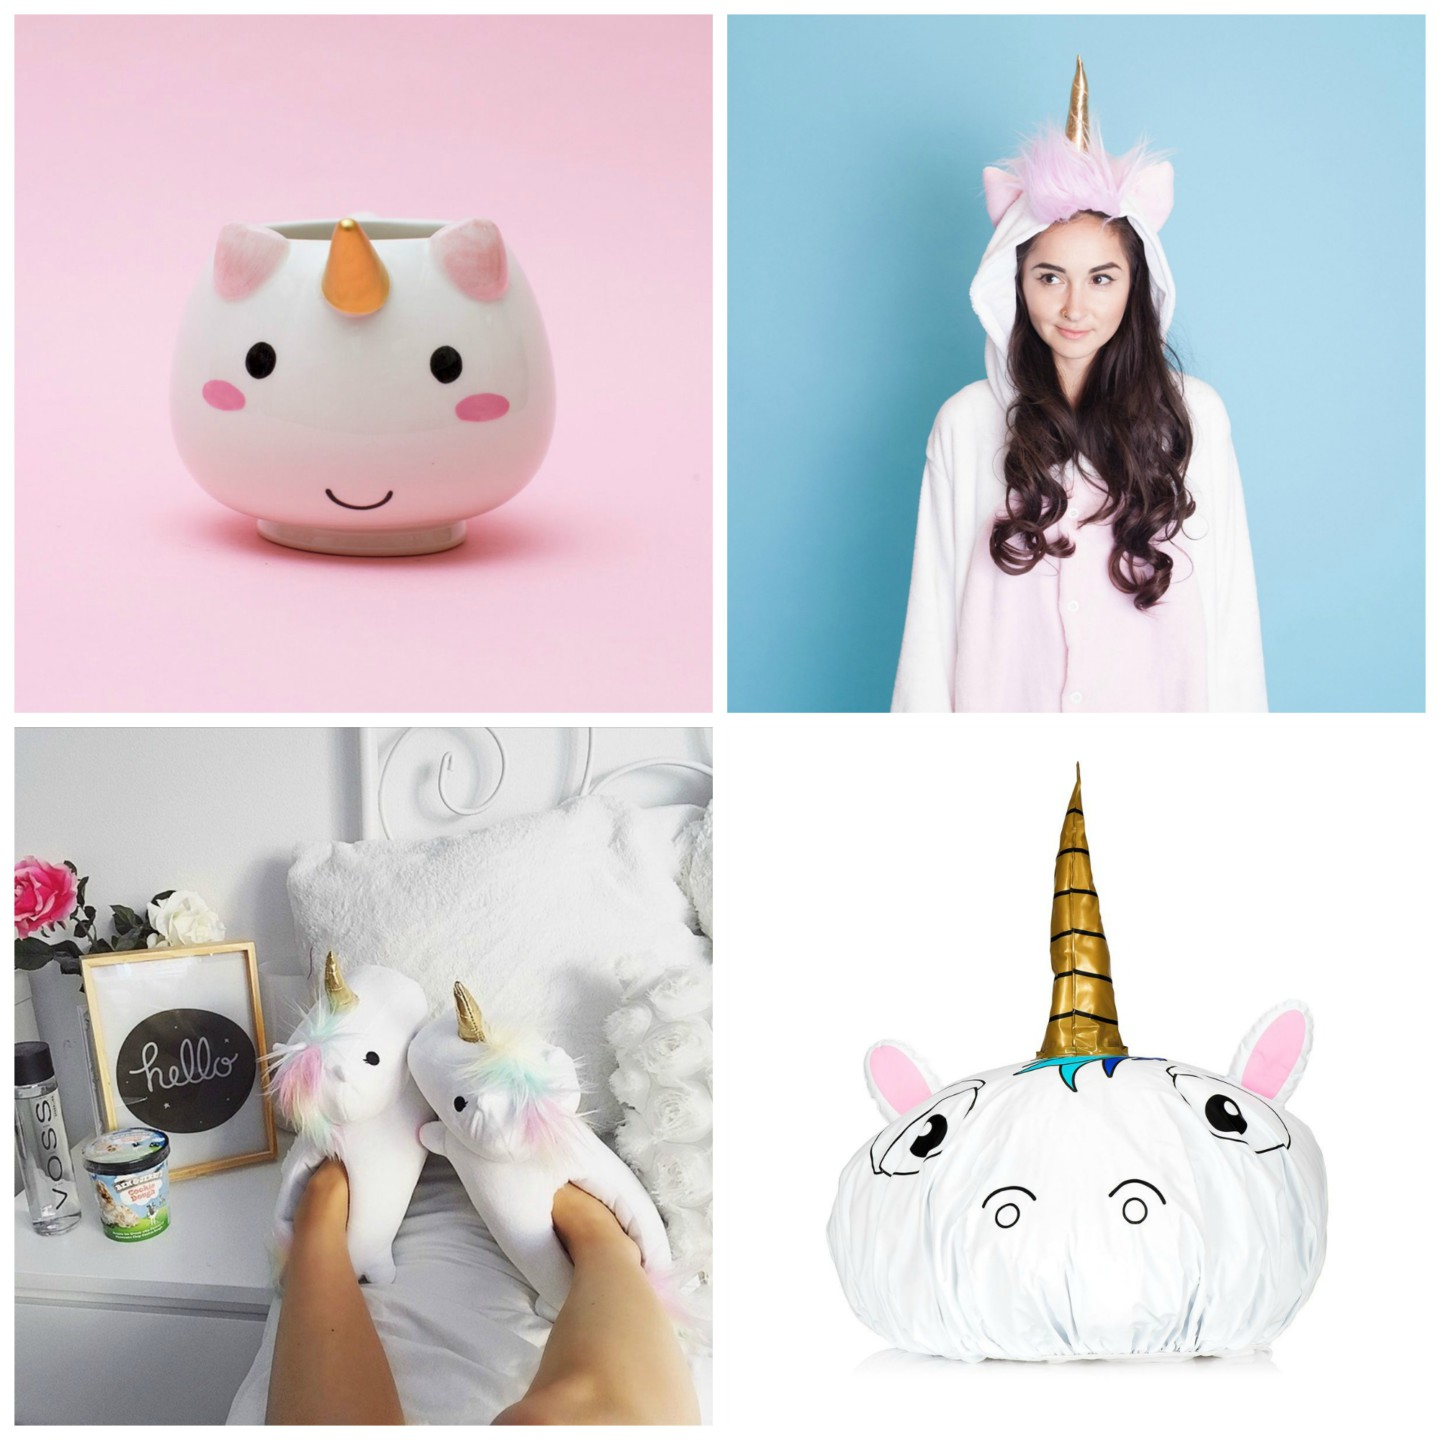 Unicorn girl image